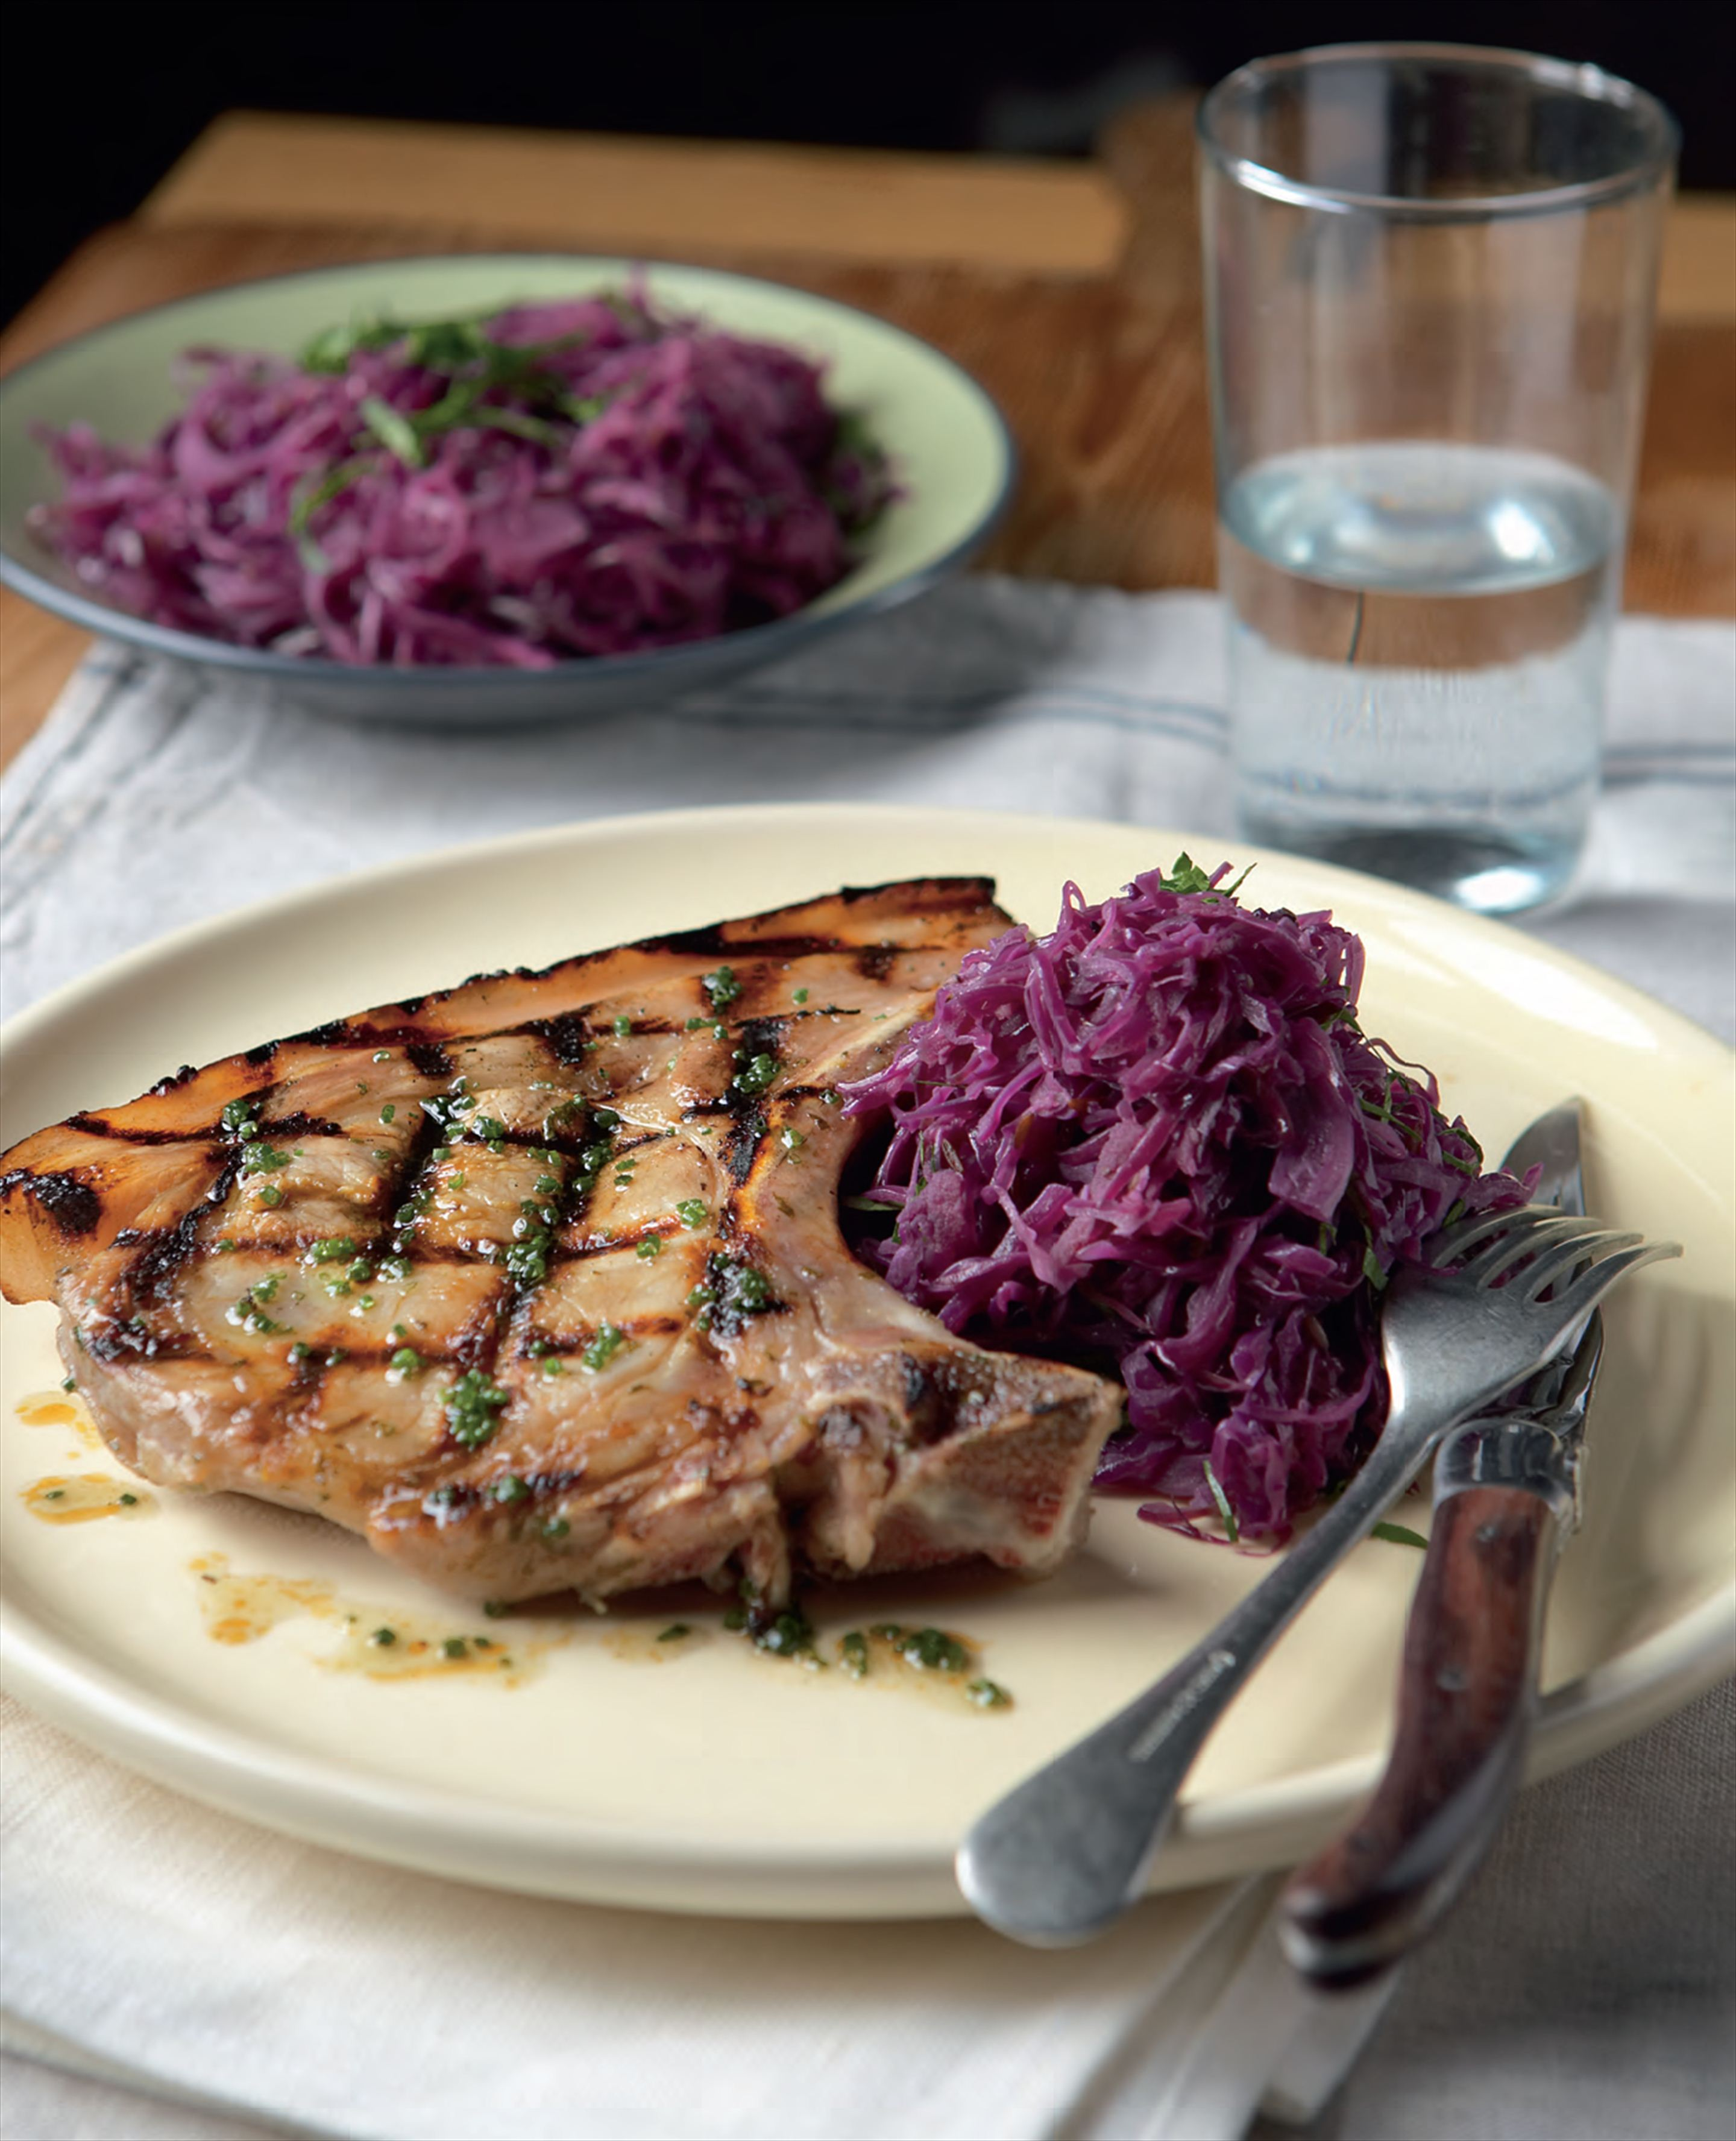 Barbecued pickled pork chop with honey and caraway